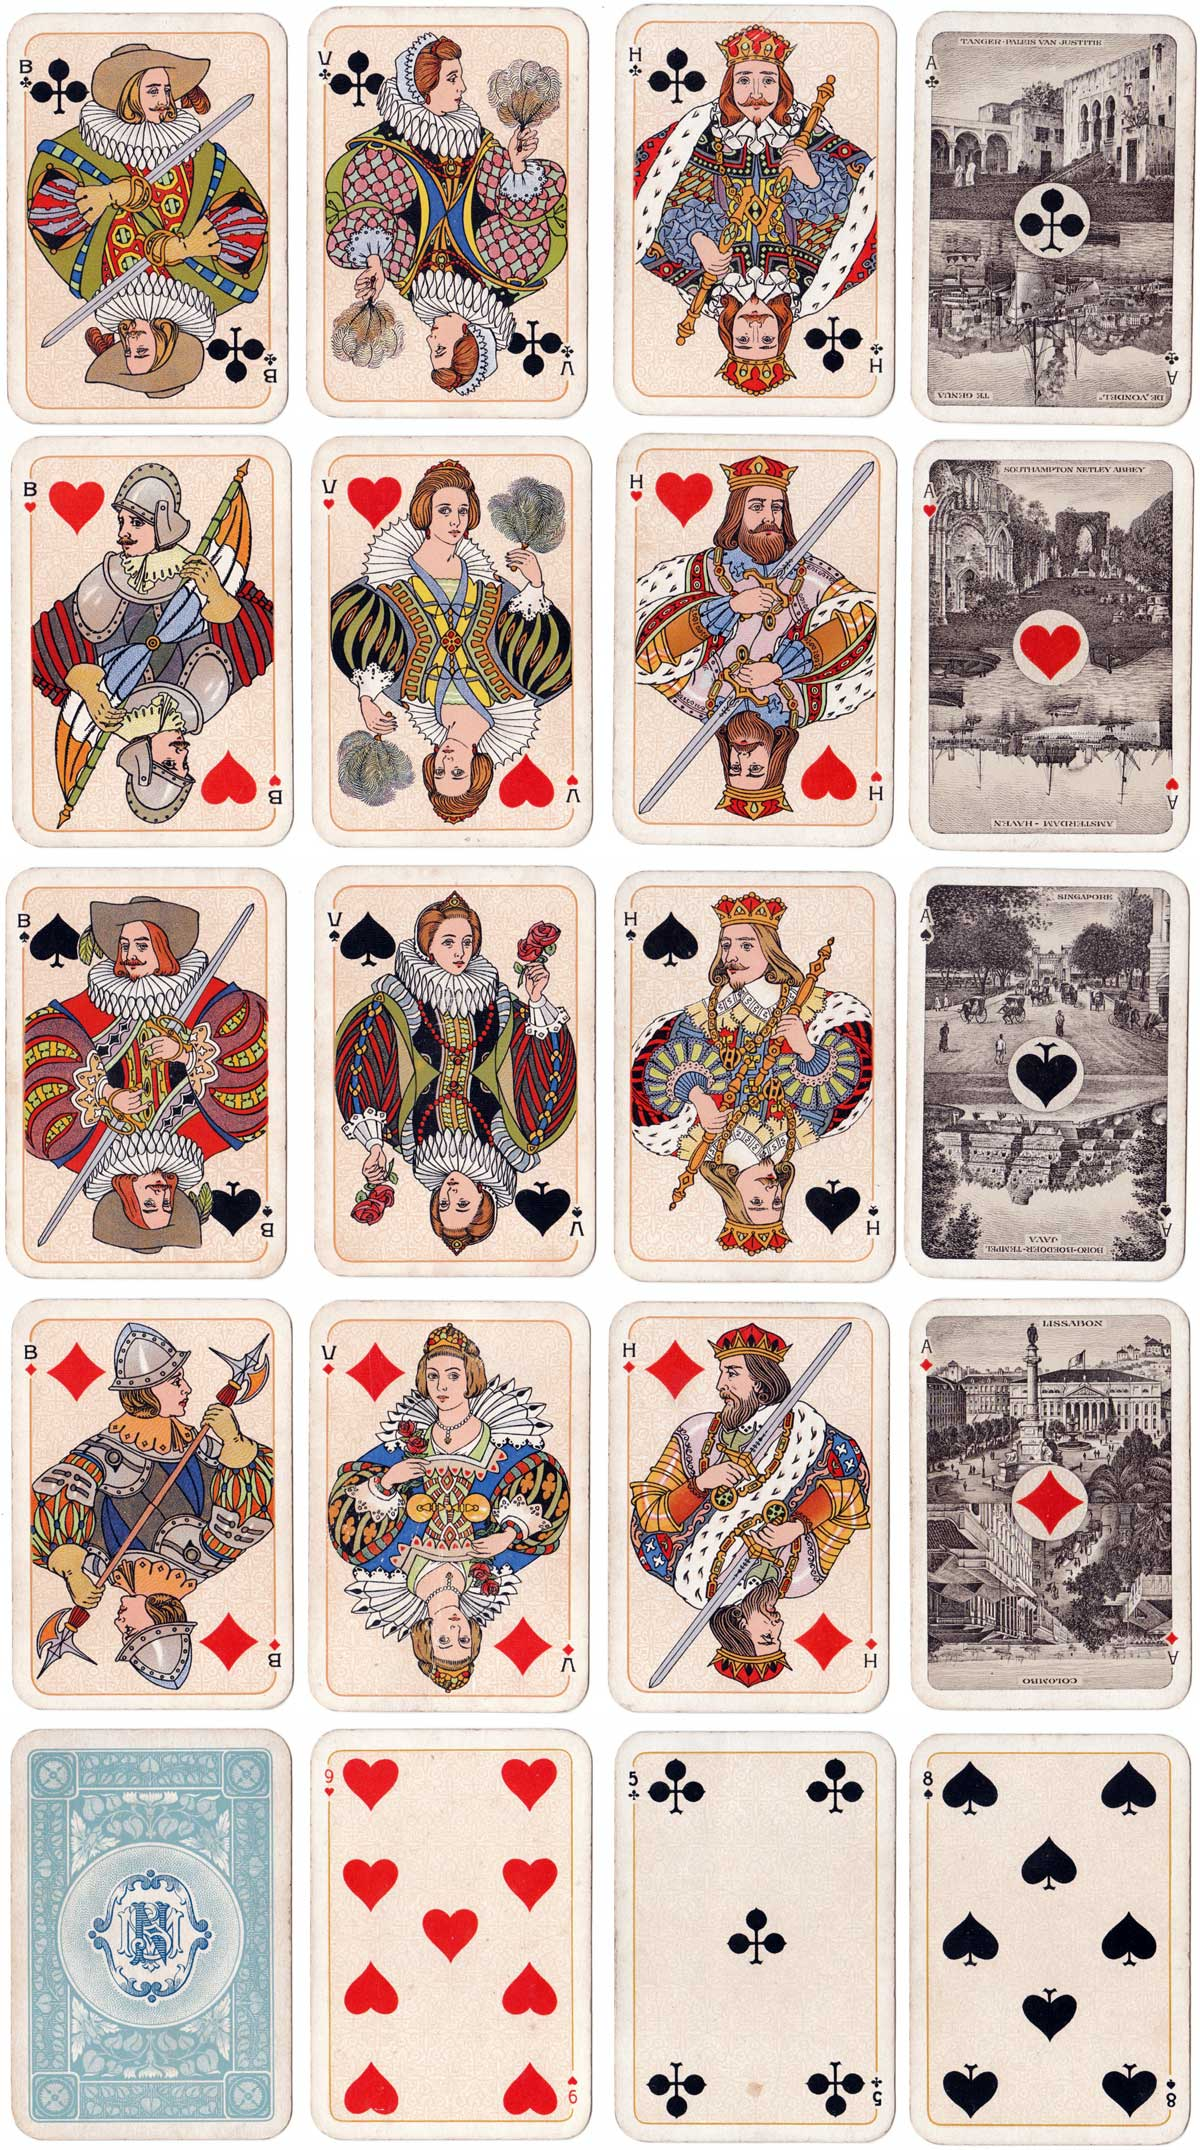 Stoomvaart Maatschappij Nederland shipping line playing cards produced by Nederlandse Speelkaarten Fabriek, c.1910